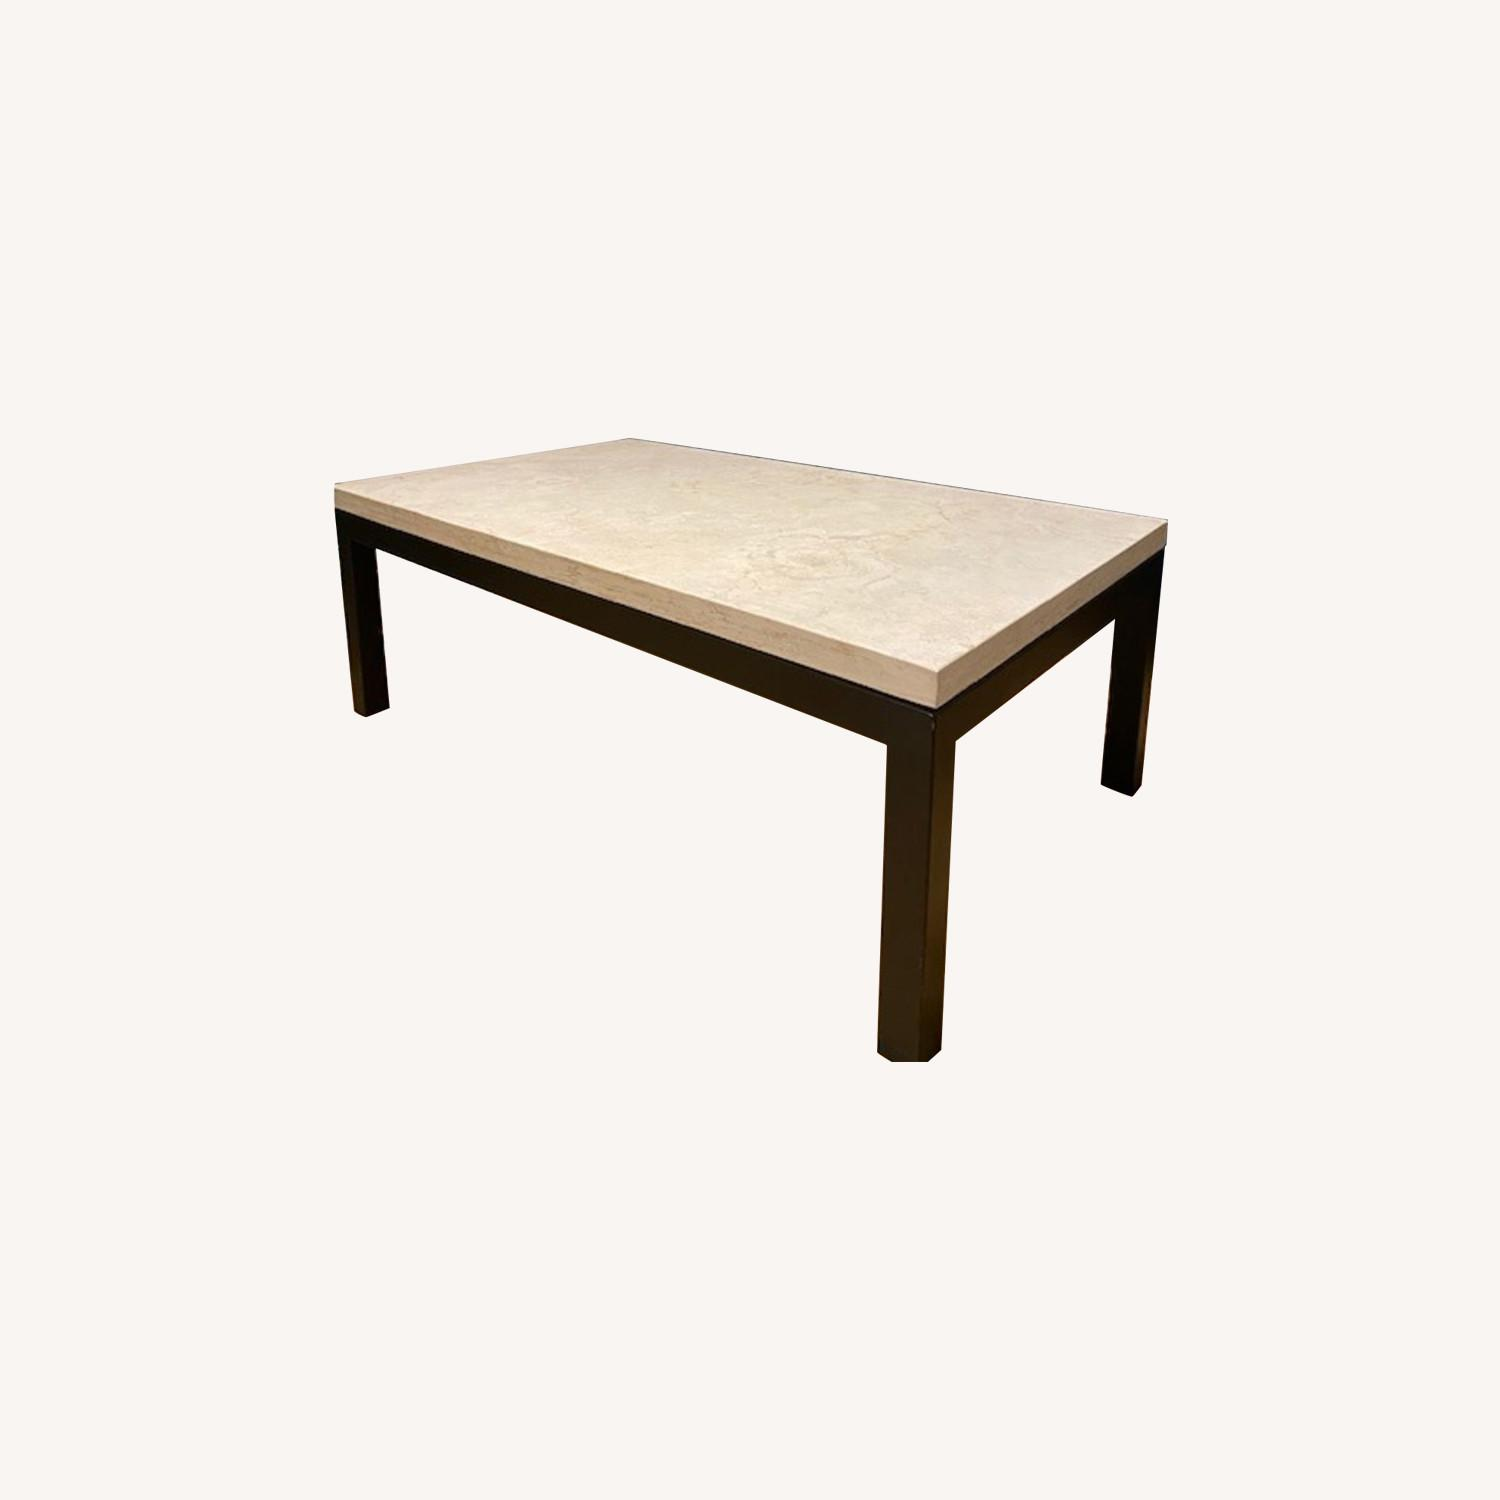 Crate & Barrel Marble Top Coffee Table - image-0